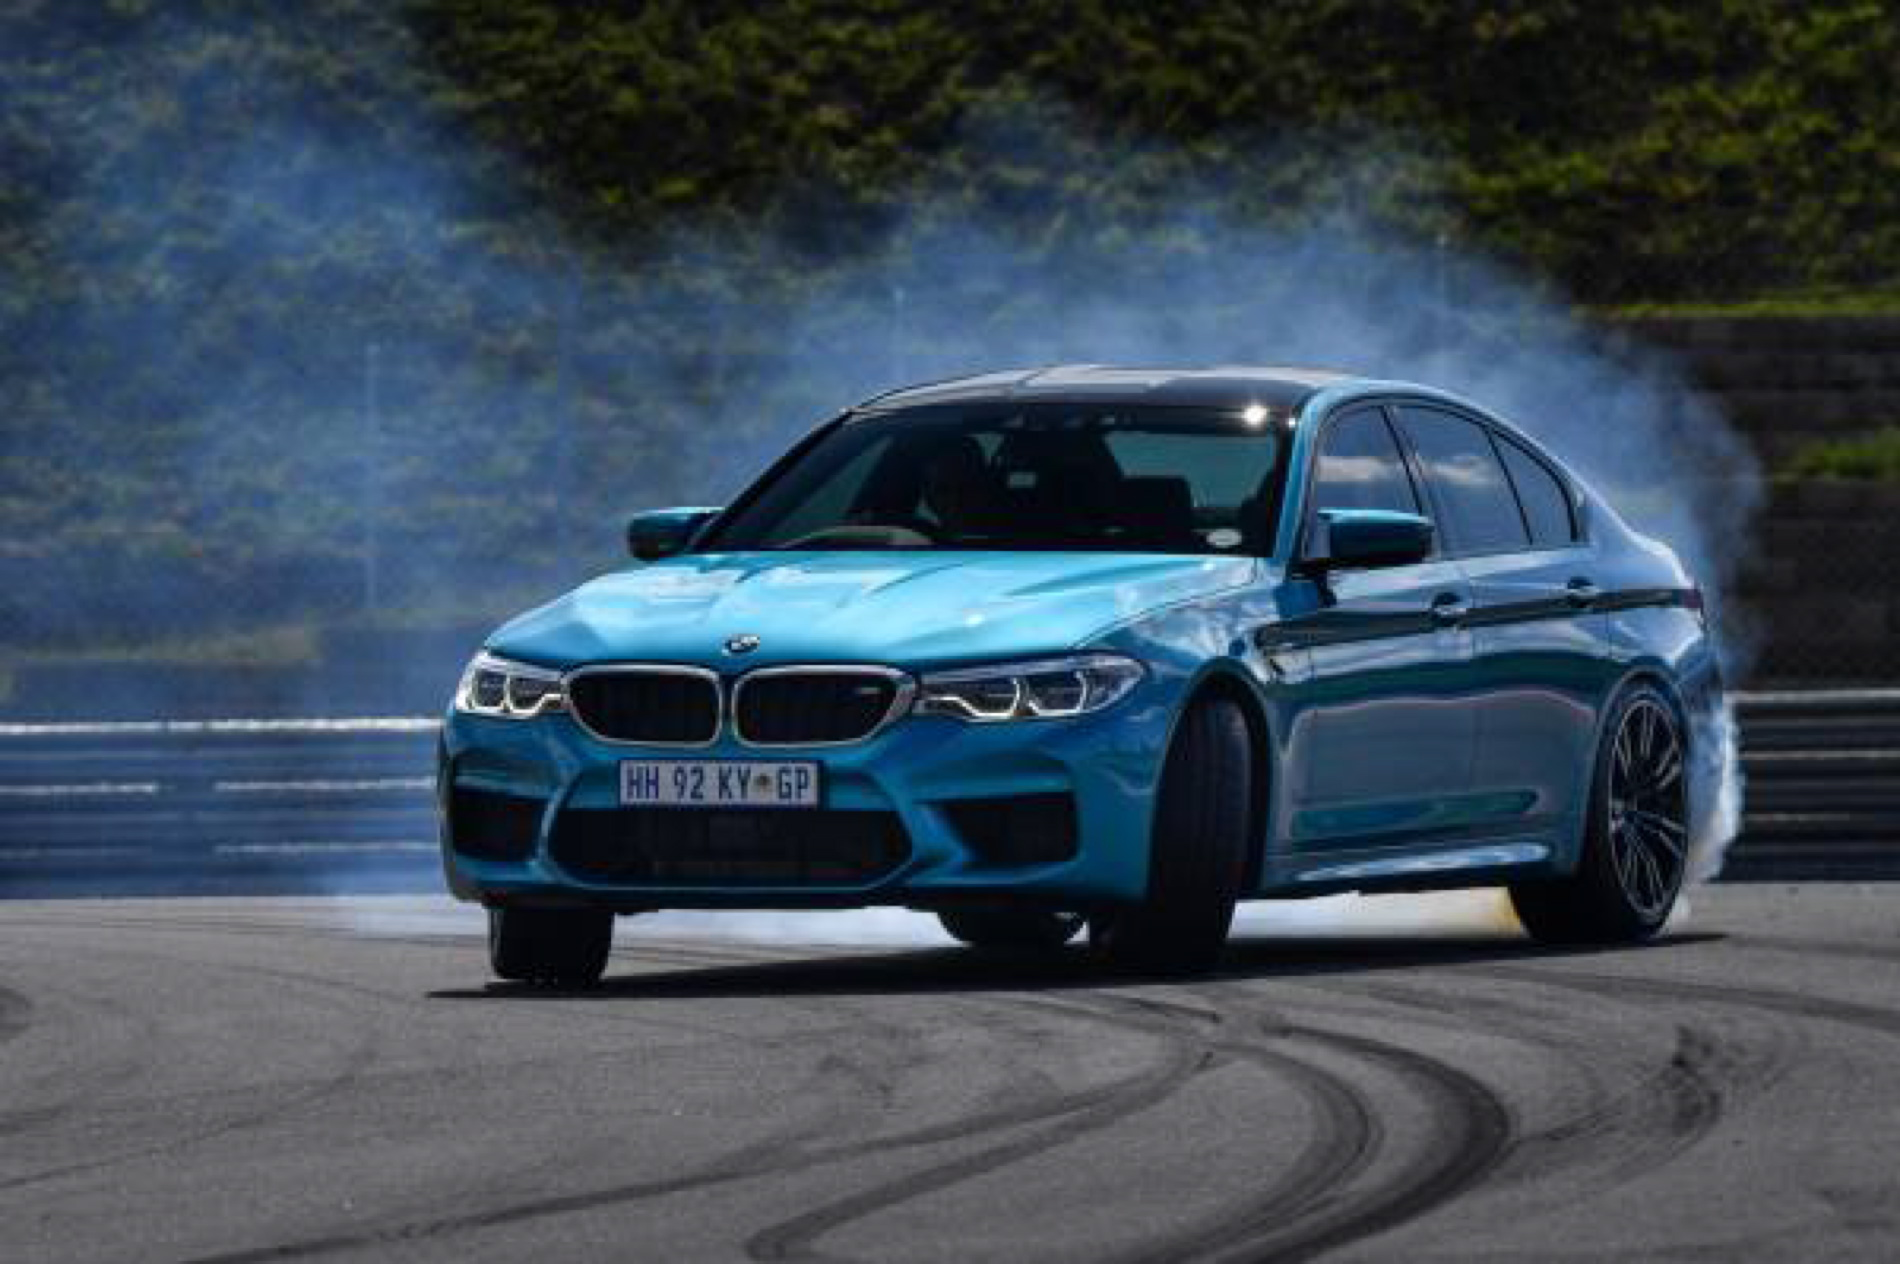 BMW M5 Snapper Rocks Blue images 10